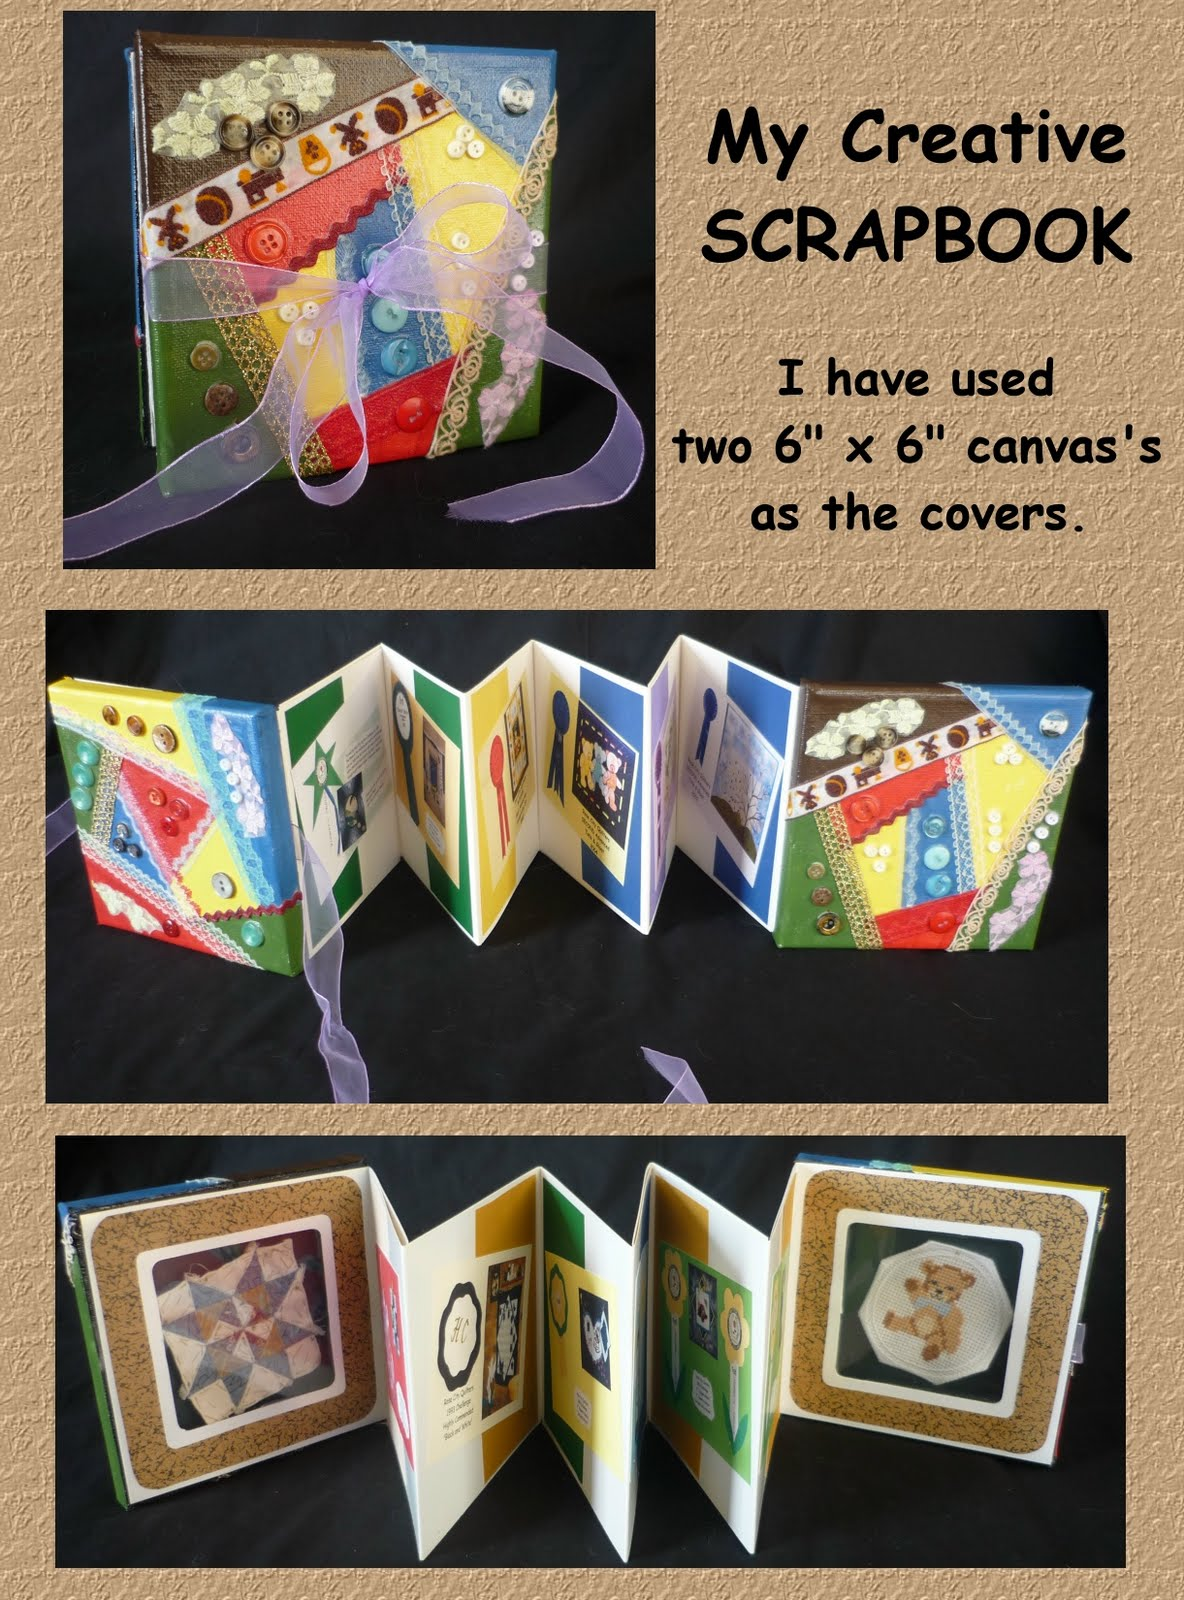 Creative Scrapbook Covers : Tizart creative scrapbook